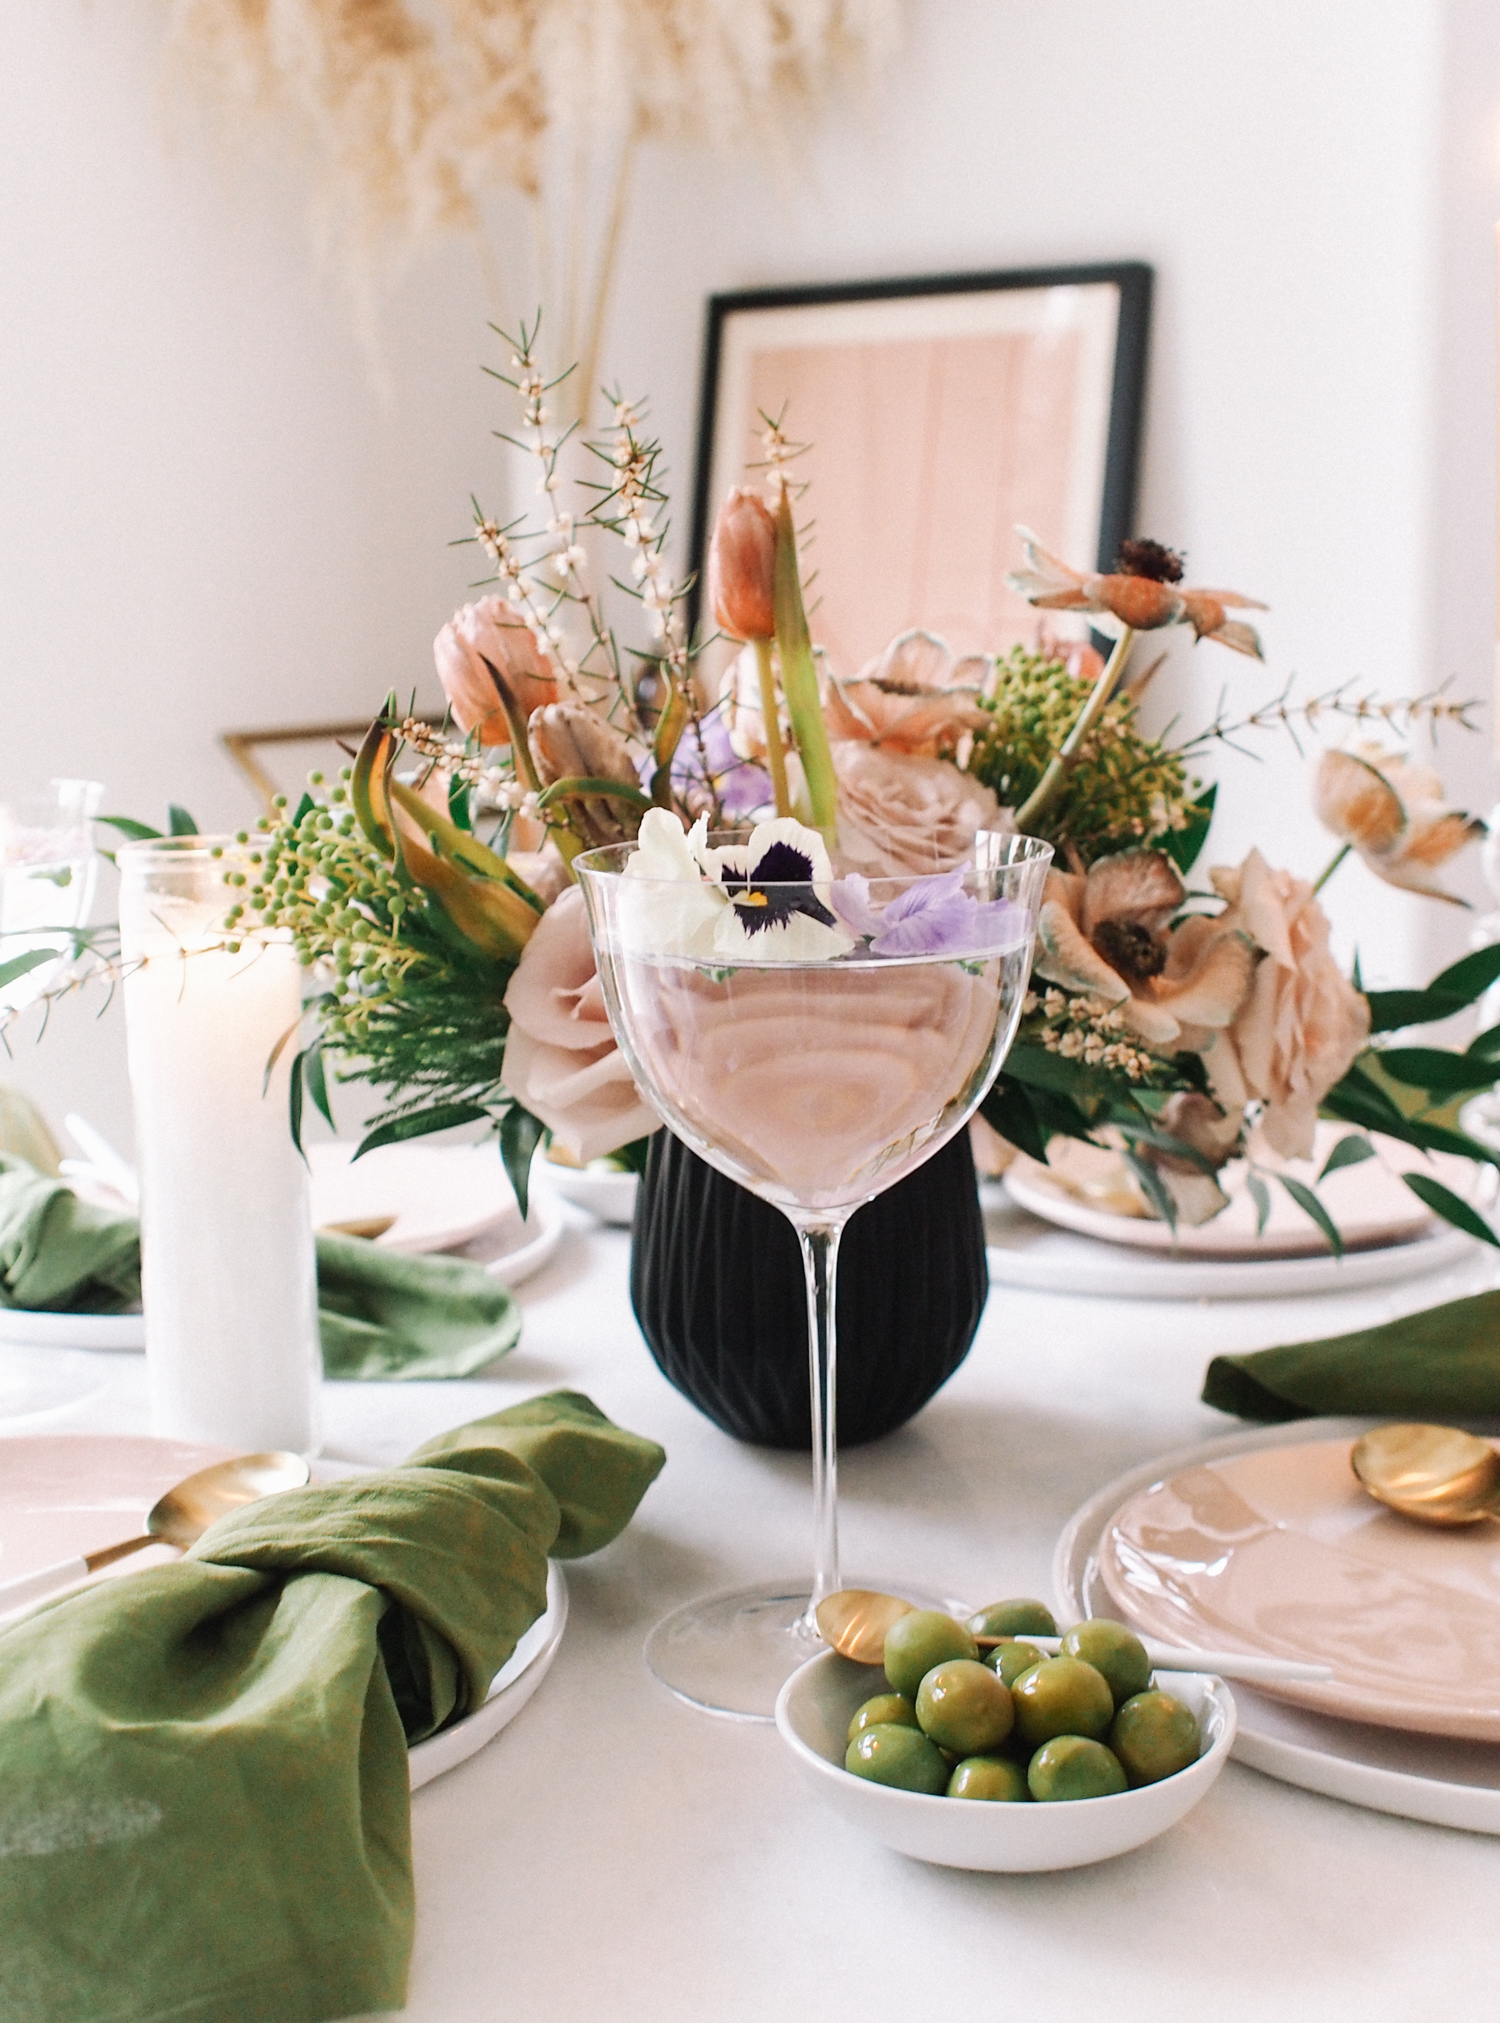 How to set a table | A Fabulous Fete